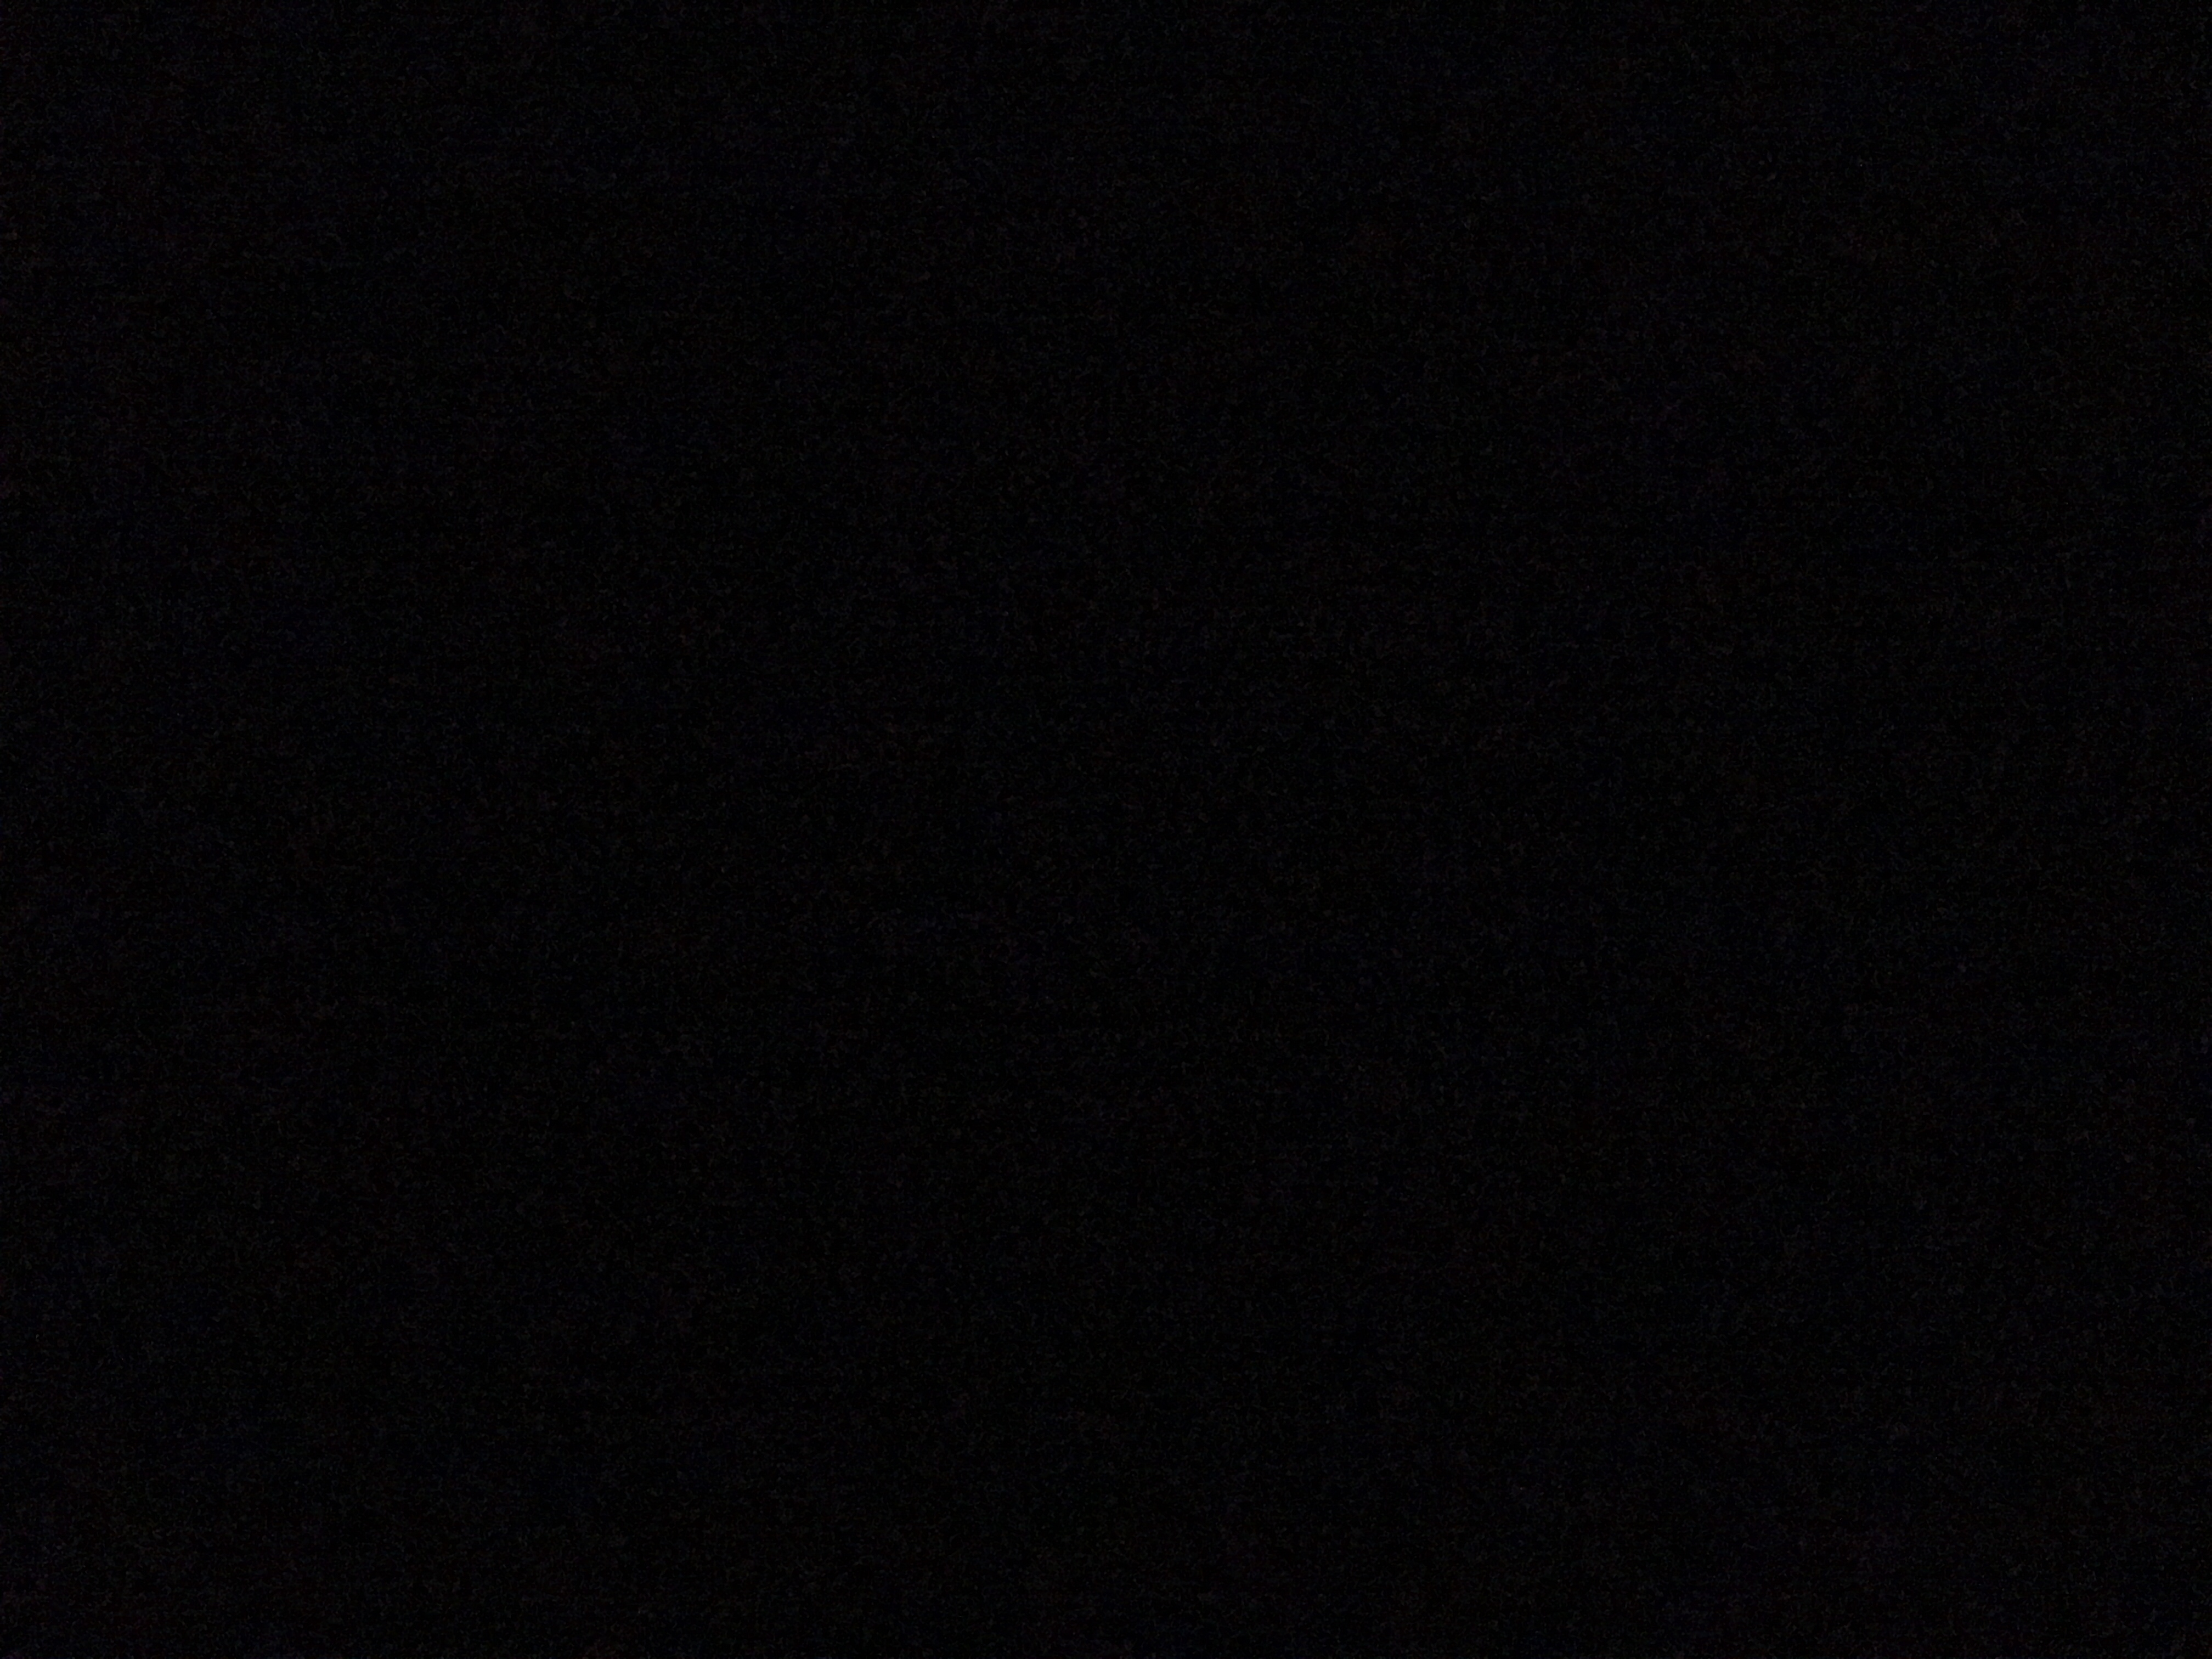 Here's an actual photo of the conditions sans lights. My camera wasn't happy, but I forced it to snap the picture anyway.